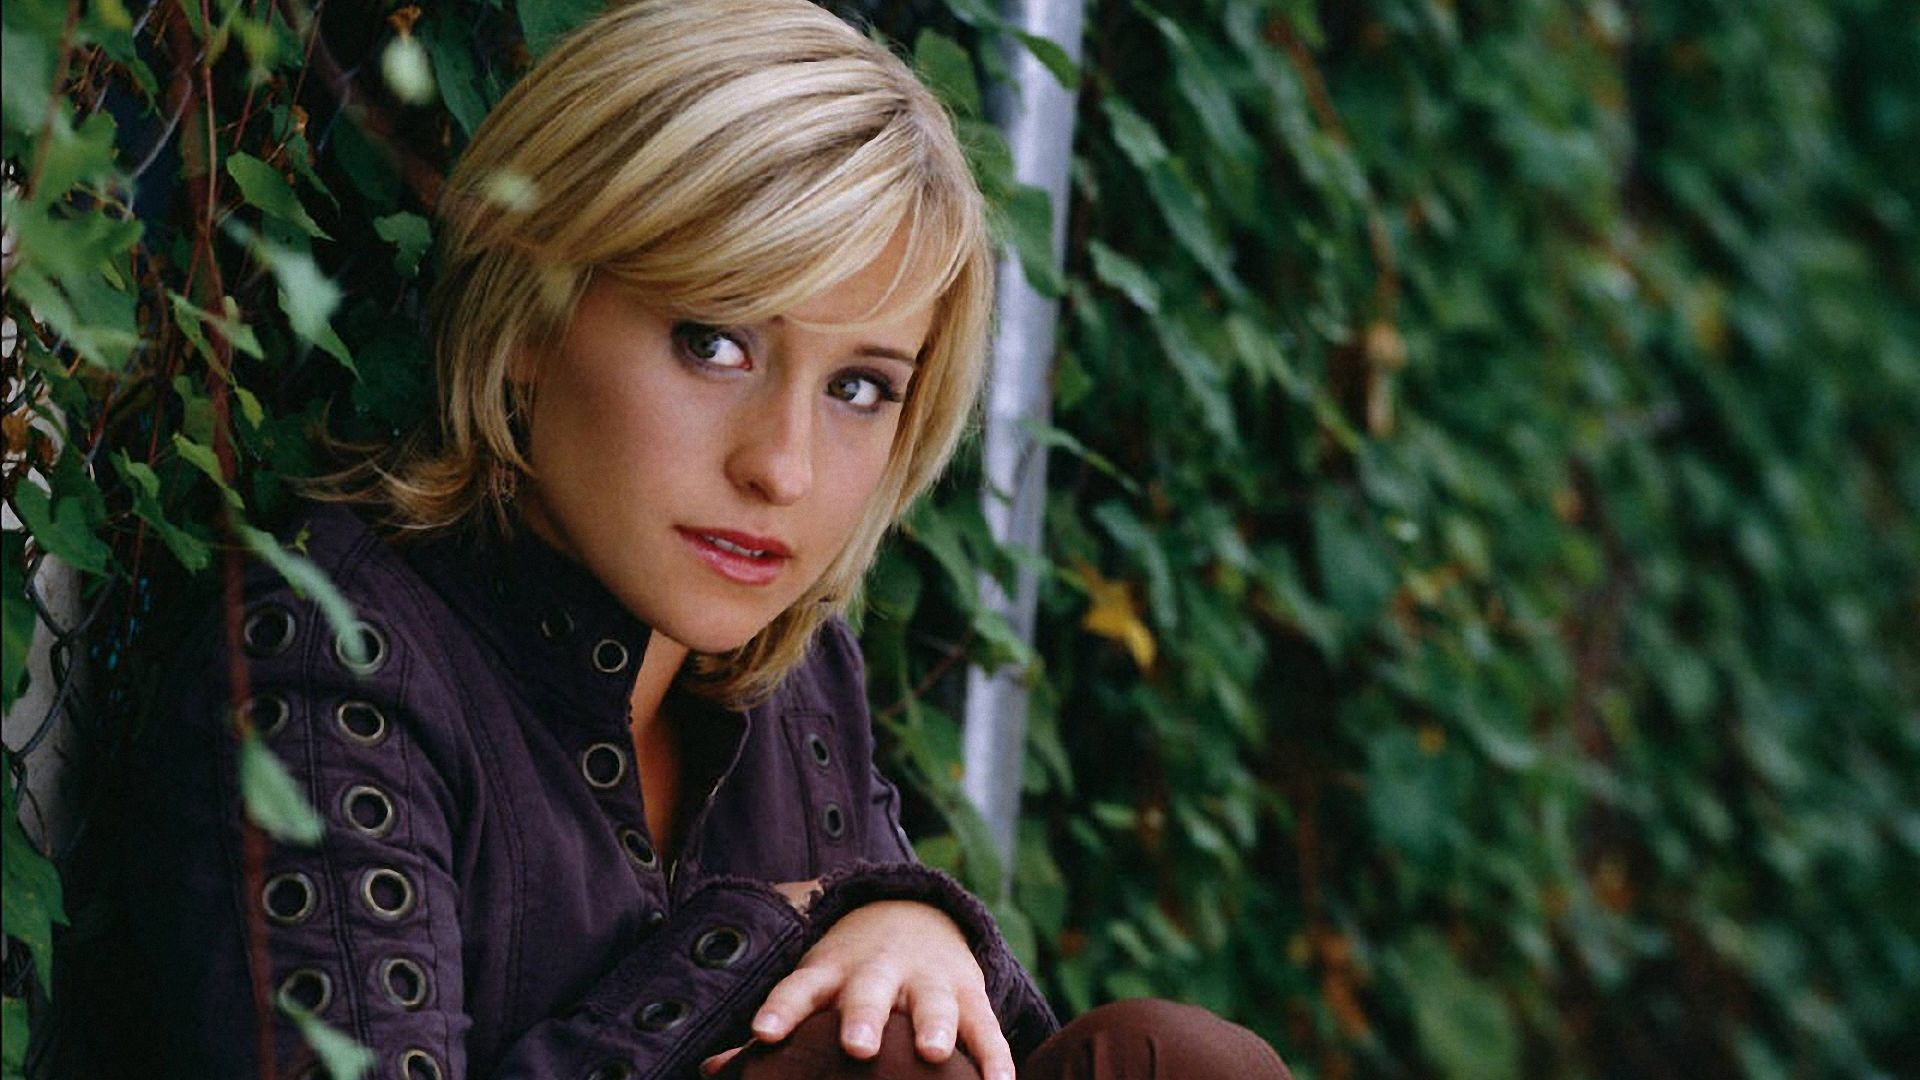 Allison Mack Wallpaper 1920x1080 Wallpapers 1920x1080 1920x1080